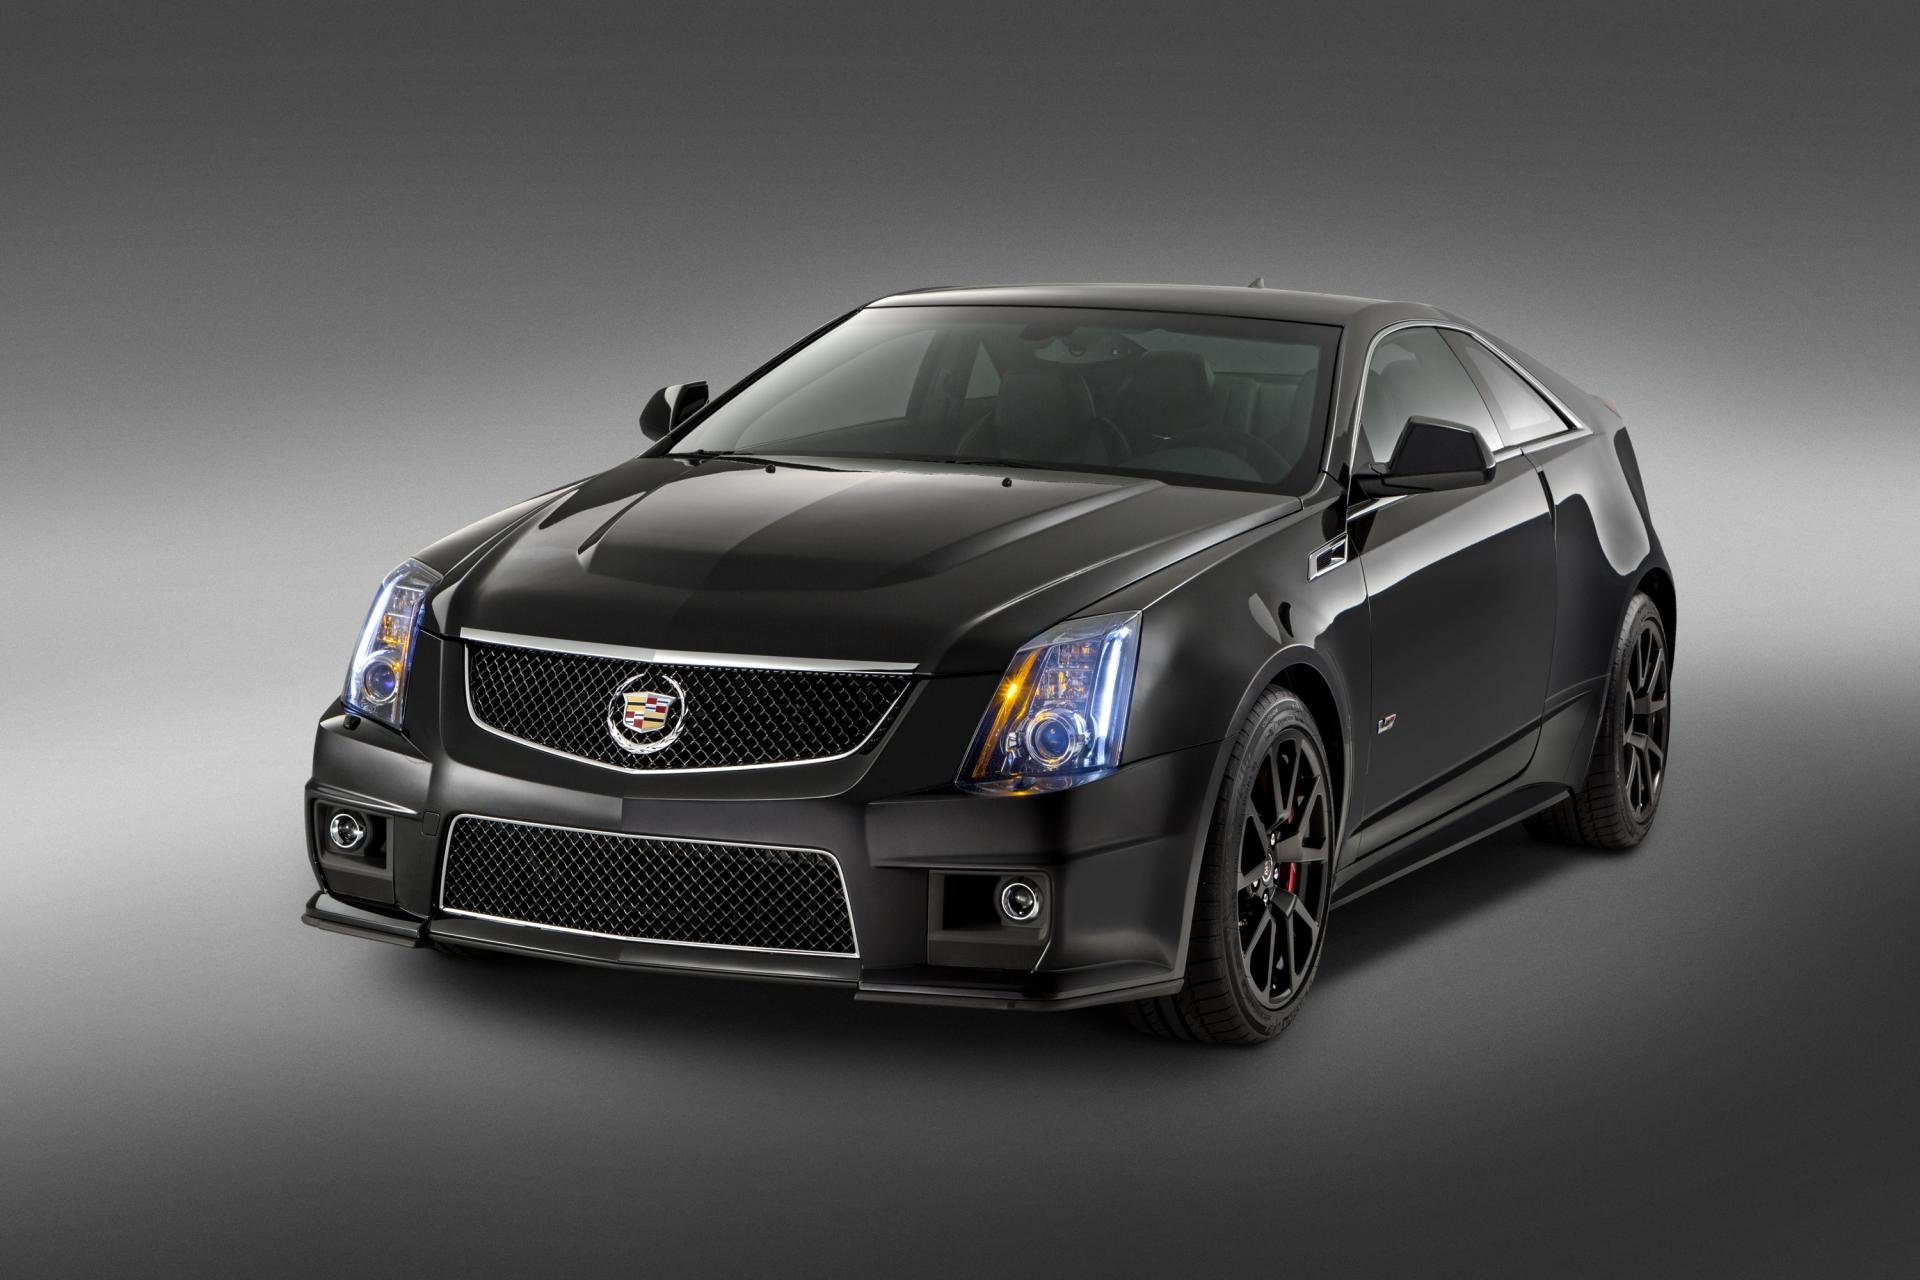 2015 Cadillac CTS-V Coupe News and Information